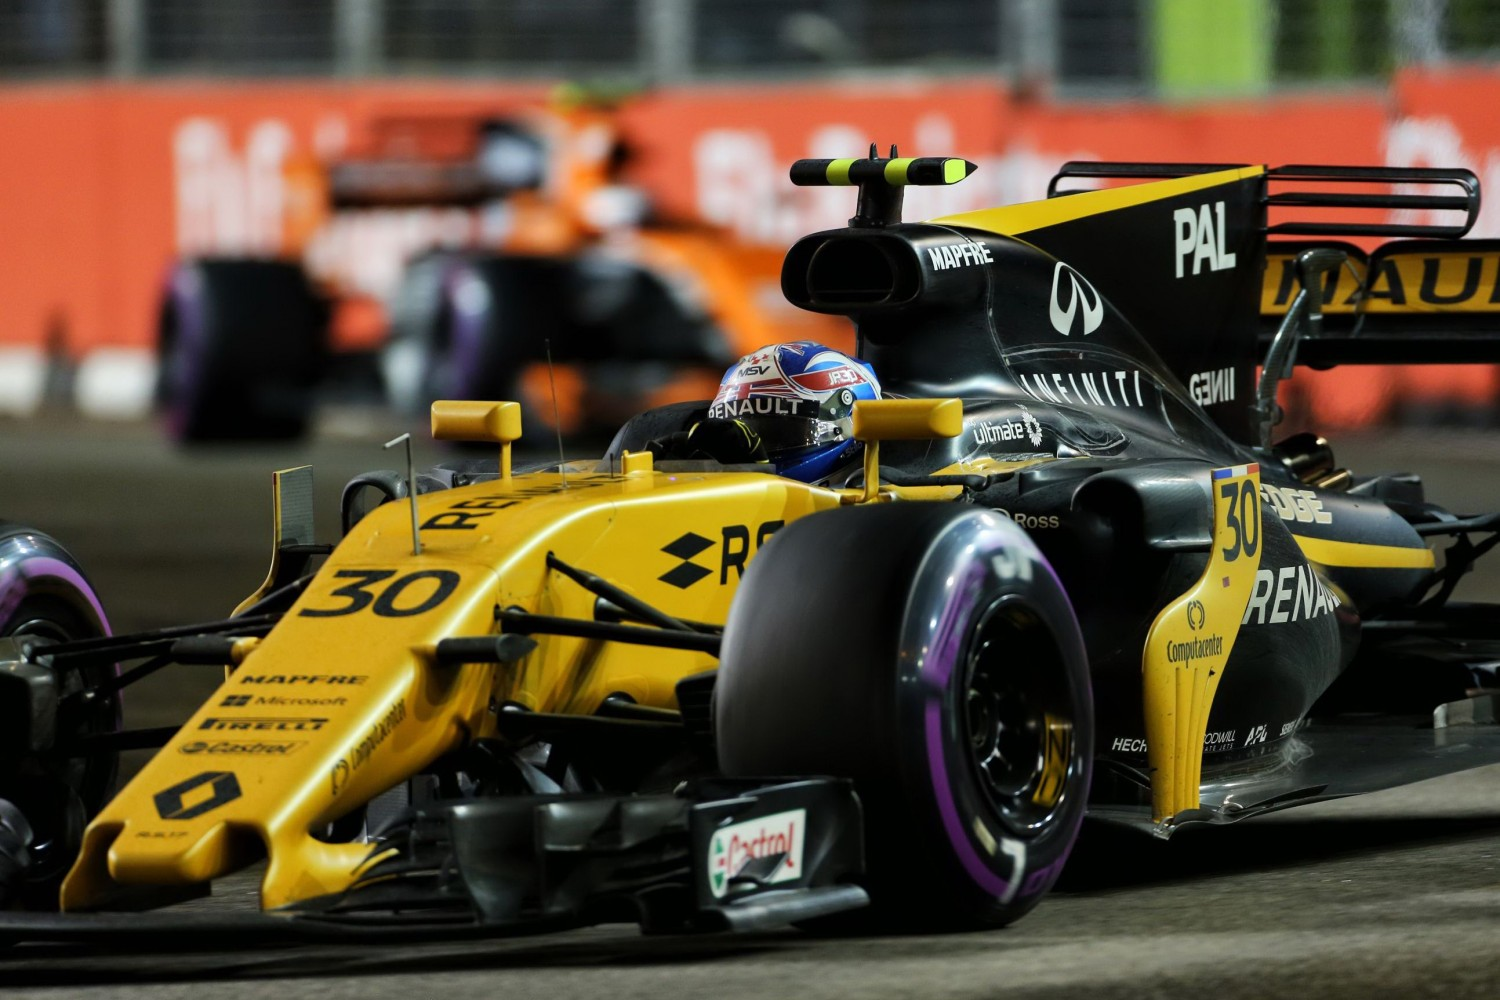 Car News | Formula One announces that it will race this year | CompleteCar.ie